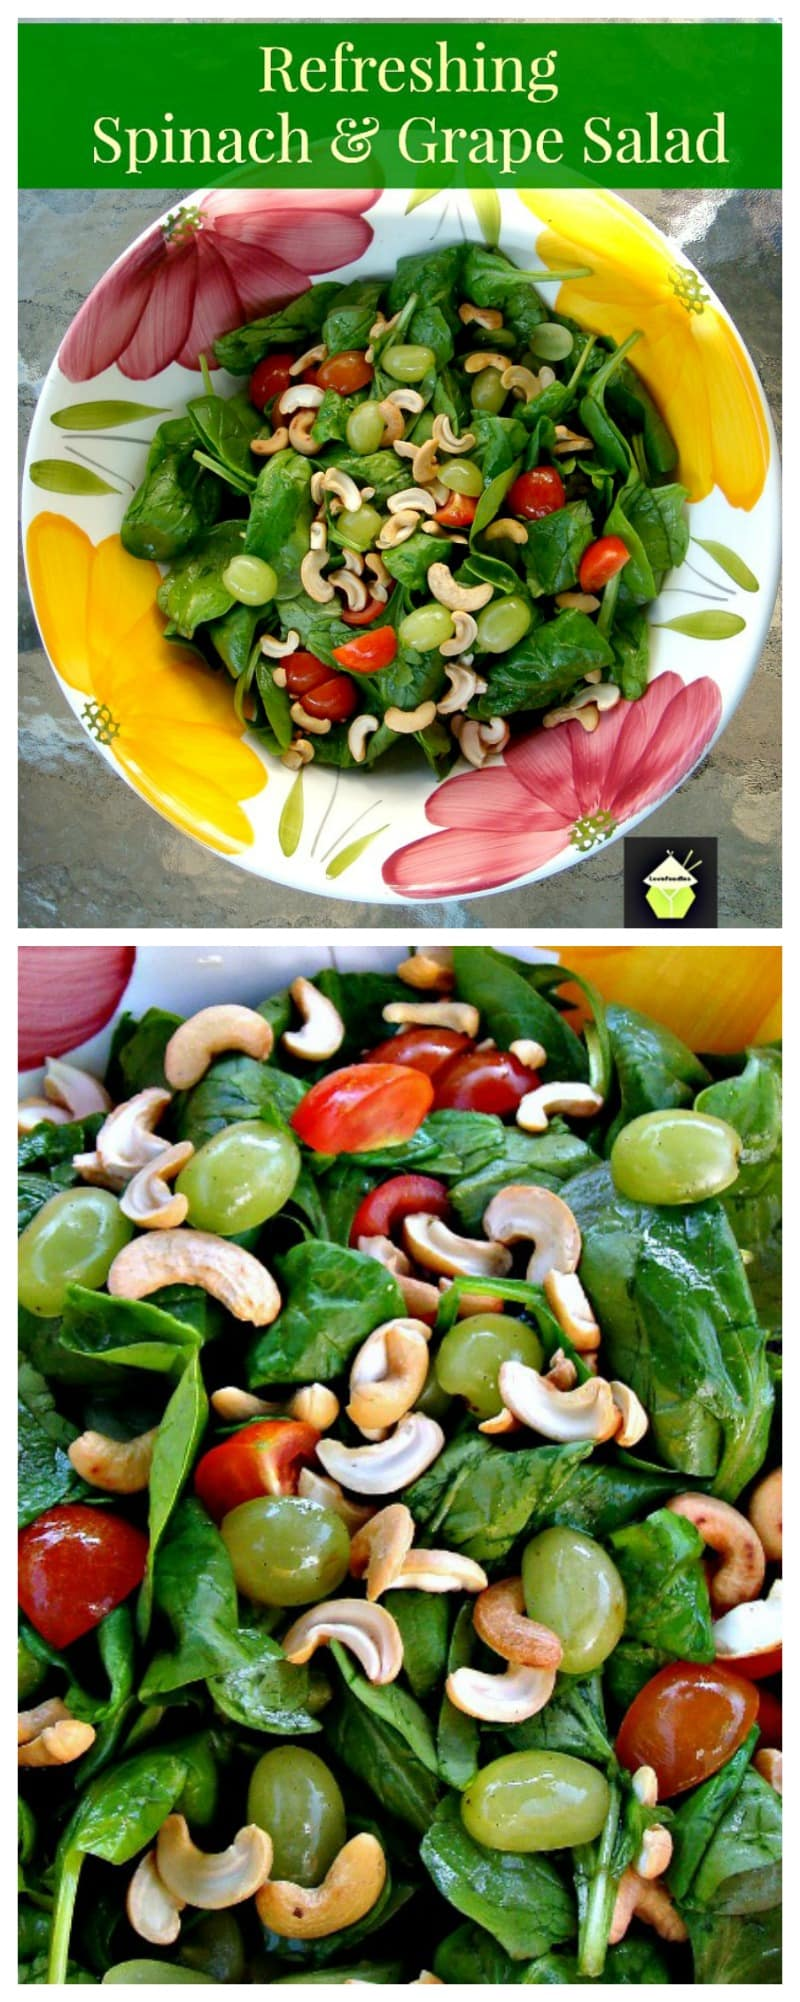 Refreshing Spinach & Grape Salad with a delicious dressing! A wonderful tasting salad high in Vitamins and Minerals. Options to also add Apple and Bacon. Always a nice combination! | Lovefoodies.com